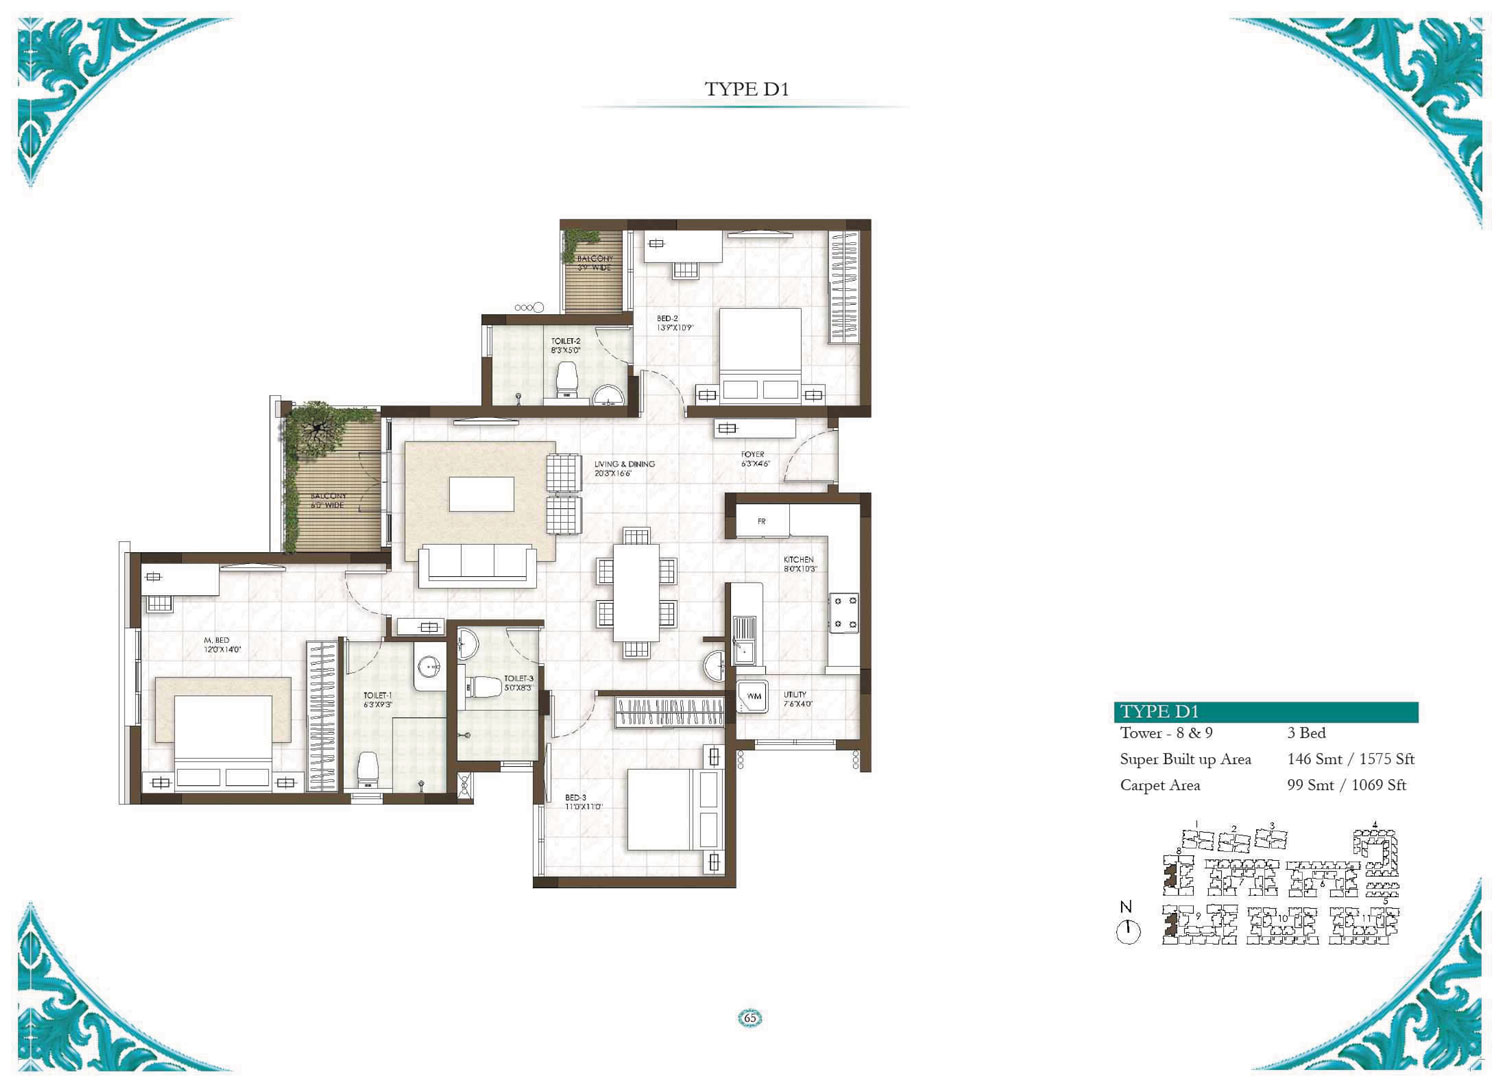 Type D1 - 3 Bed - 1575 Sq Ft